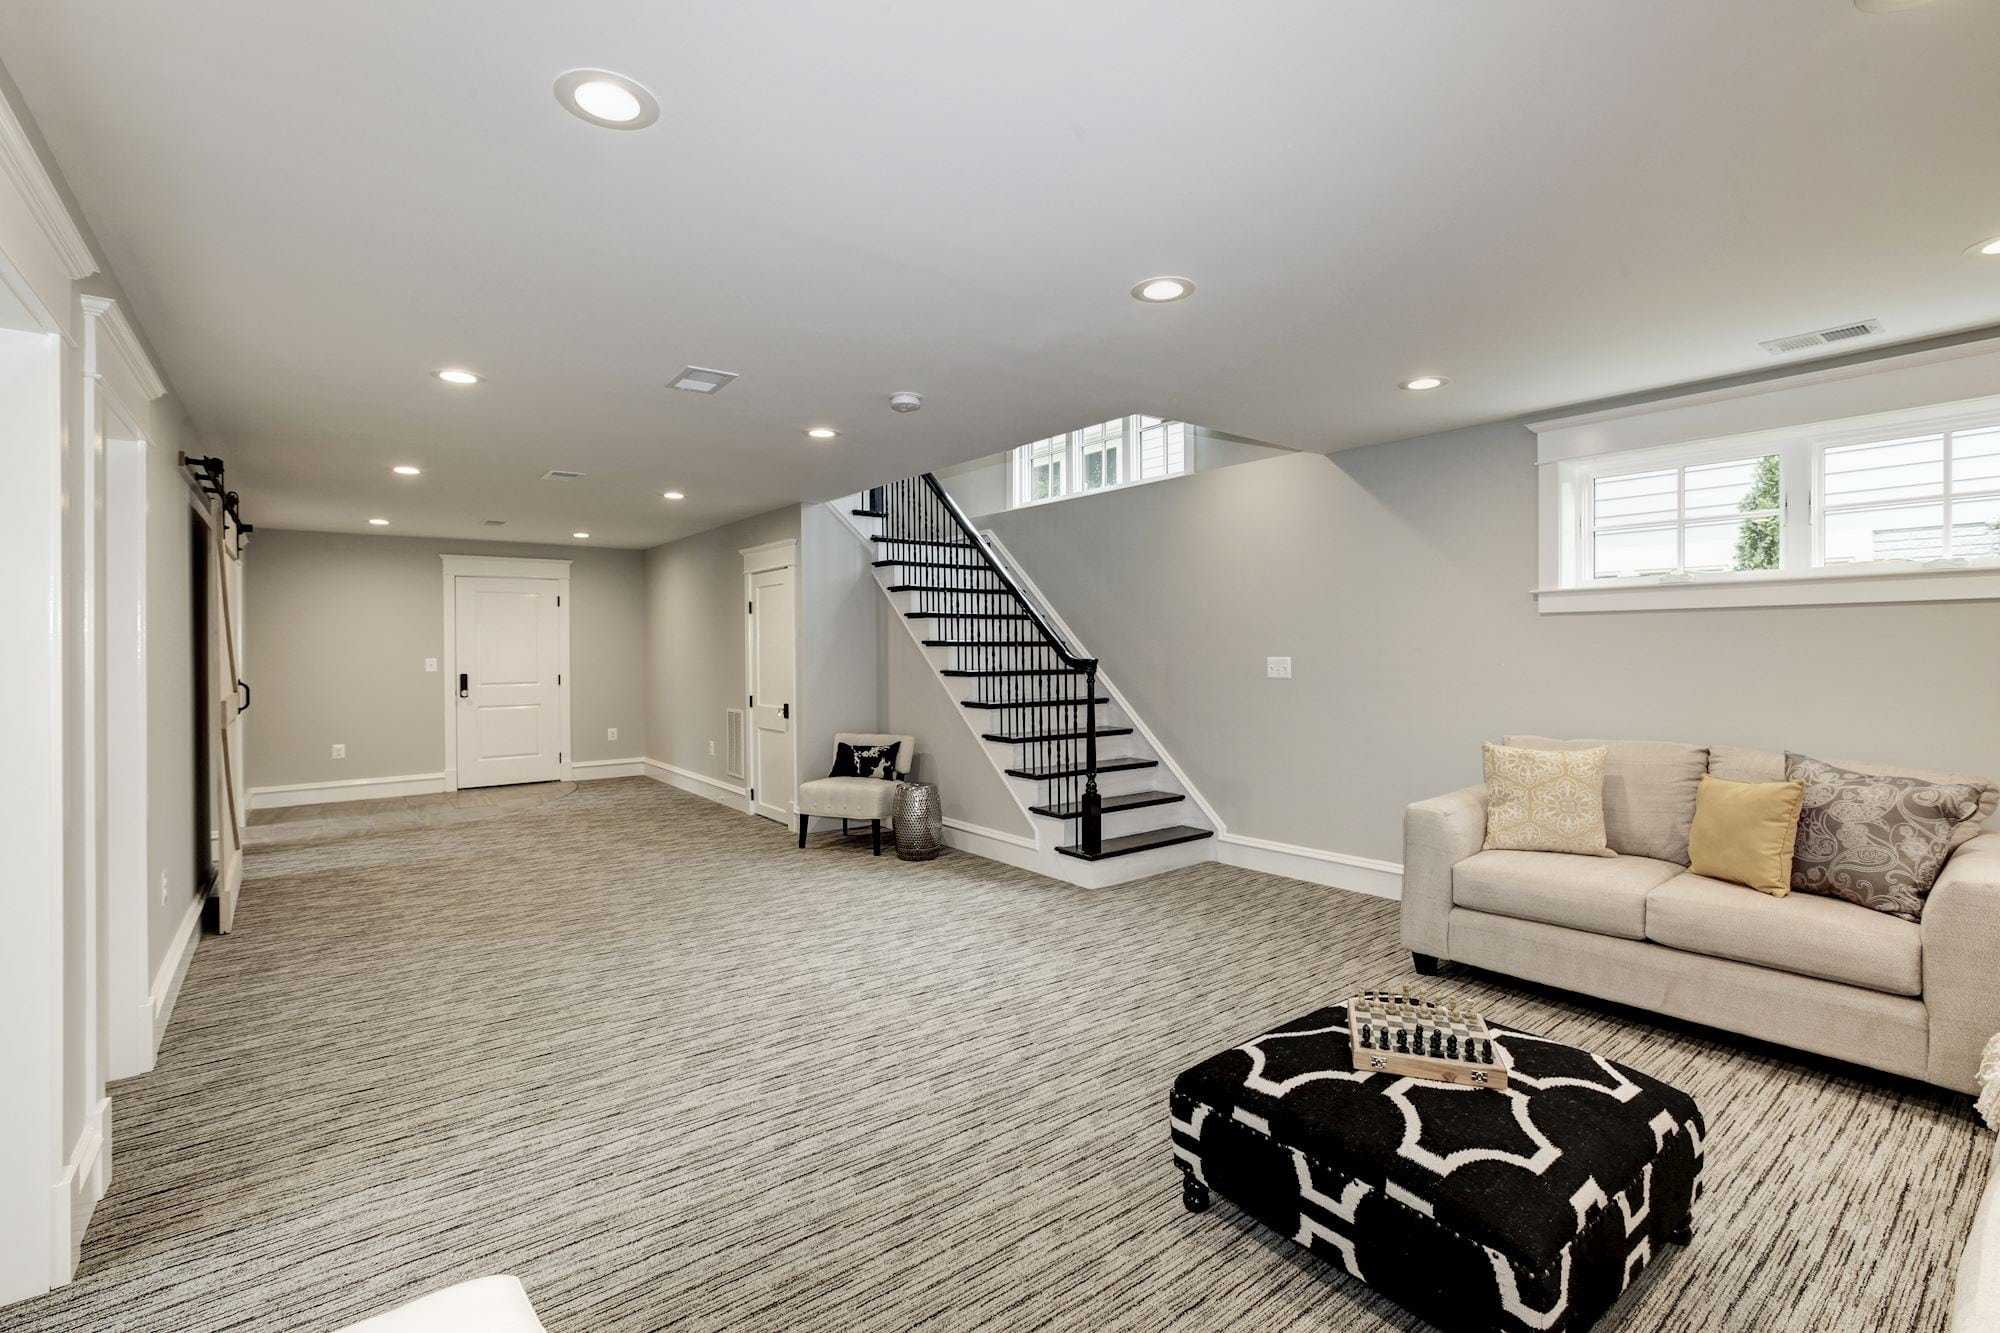 Lower level leads to garage, bedroom, bonus room, mudroom. Custom Home by Custom Builder, North Arlington, VA 22207